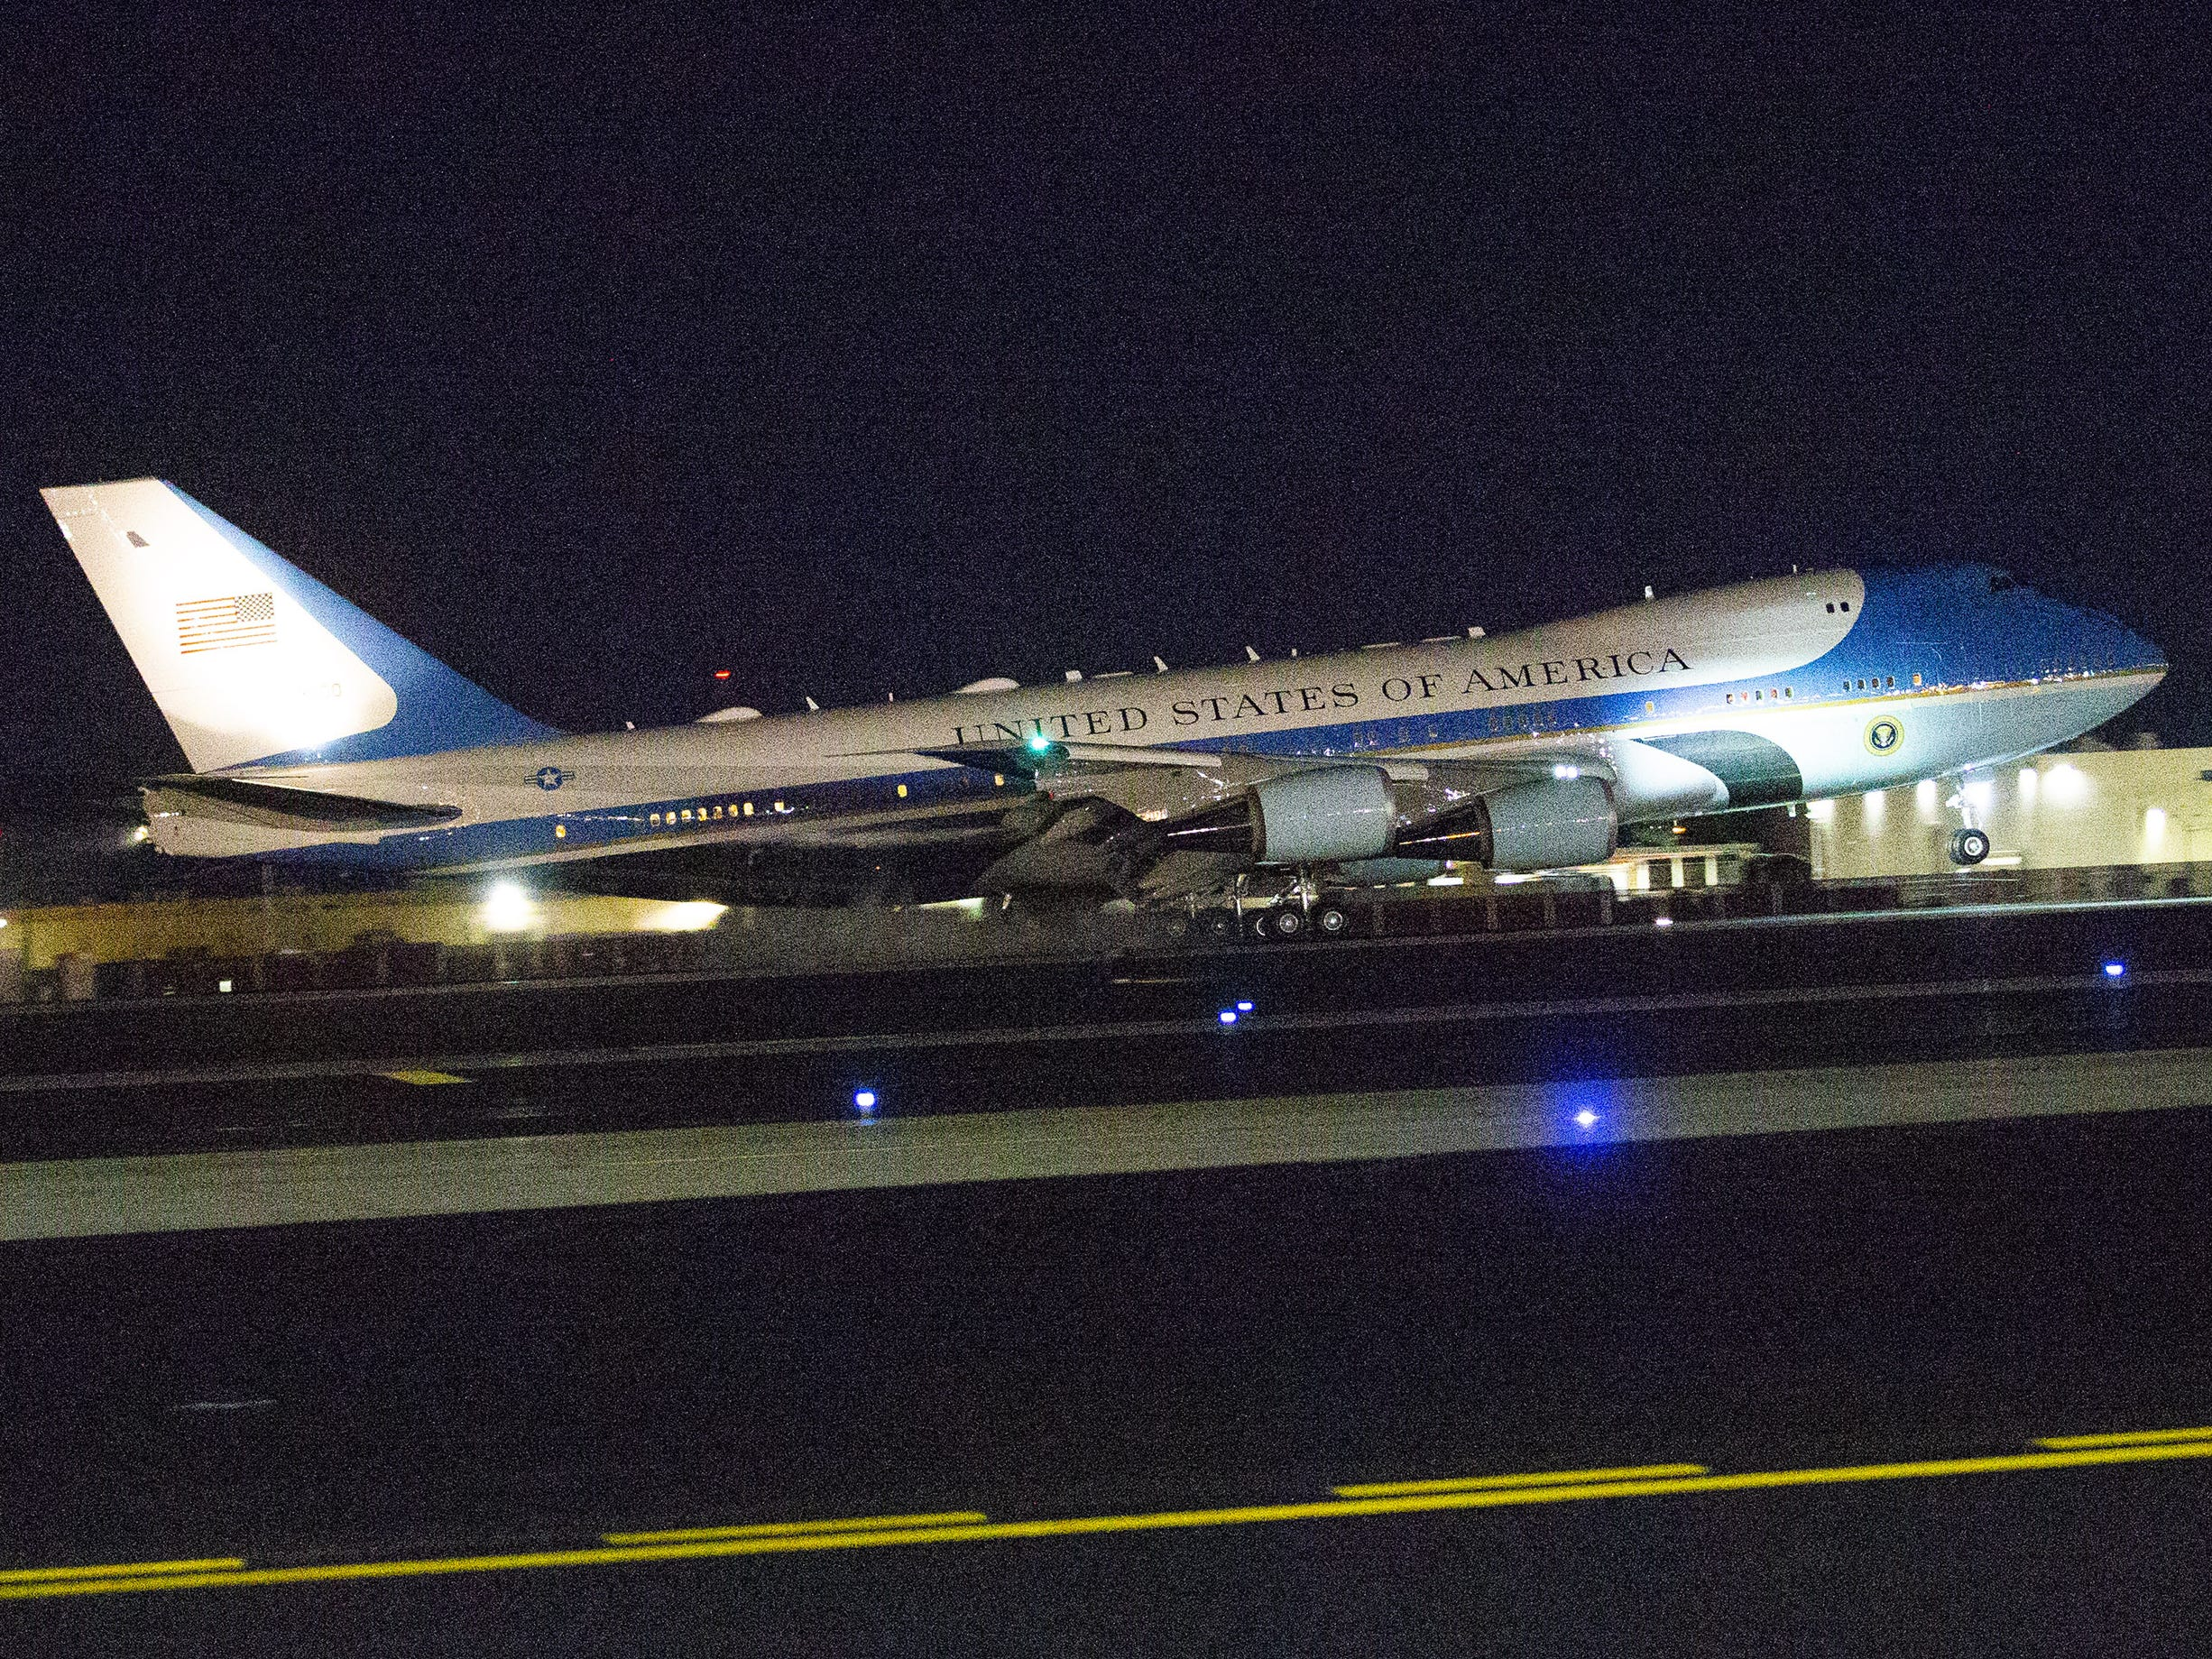 President Trump's Air Force One touches down at Phoenix Sky Harbor Airport on Oct. 18, 2018.